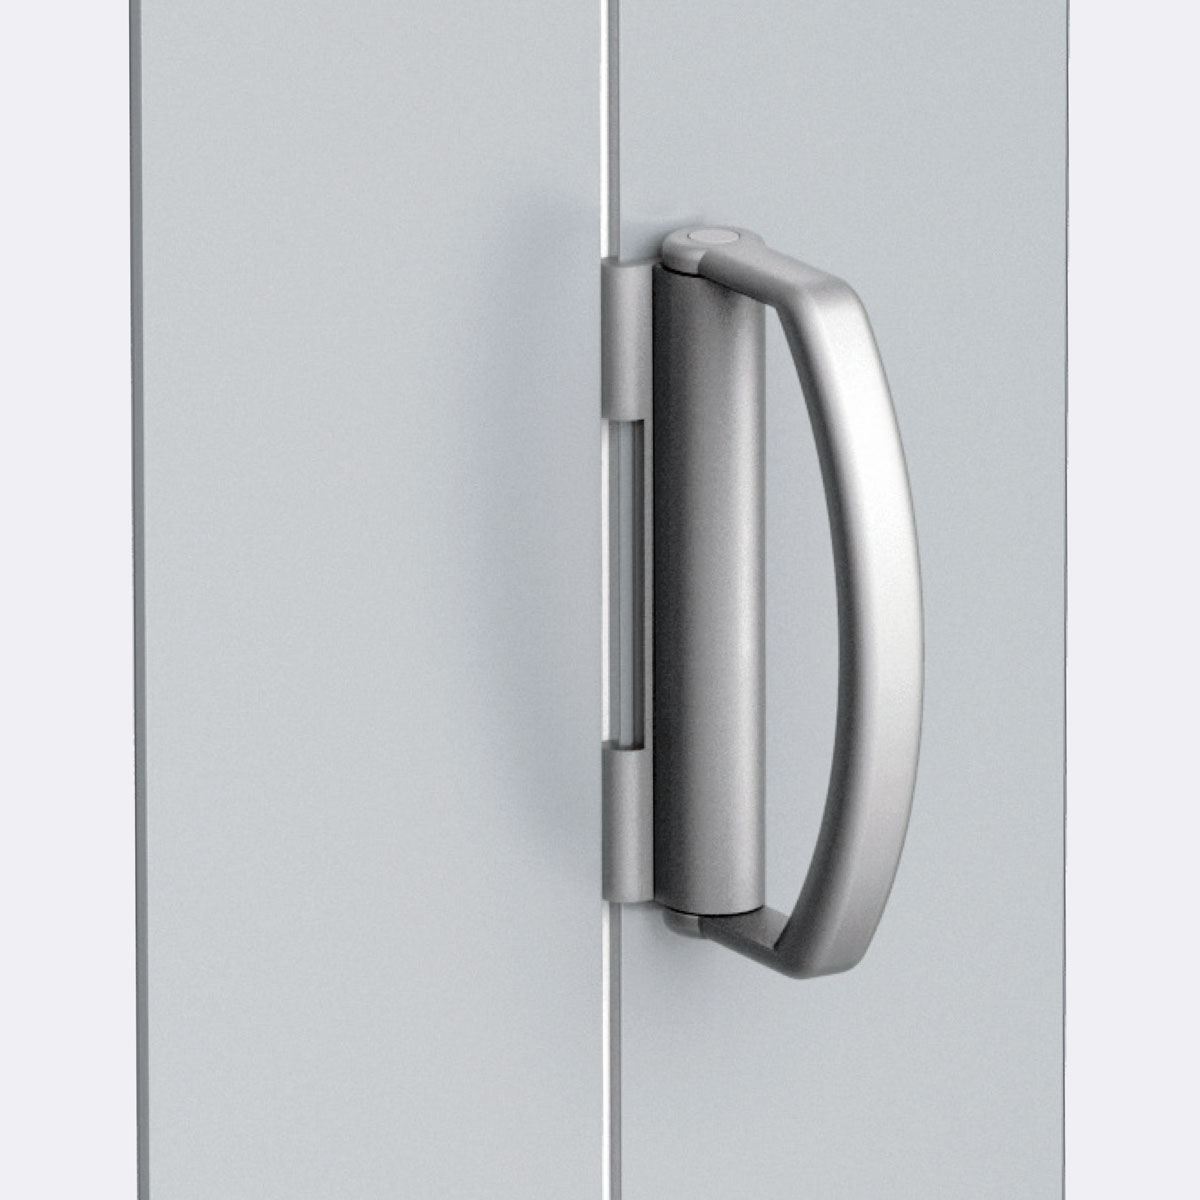 bi fold window handle